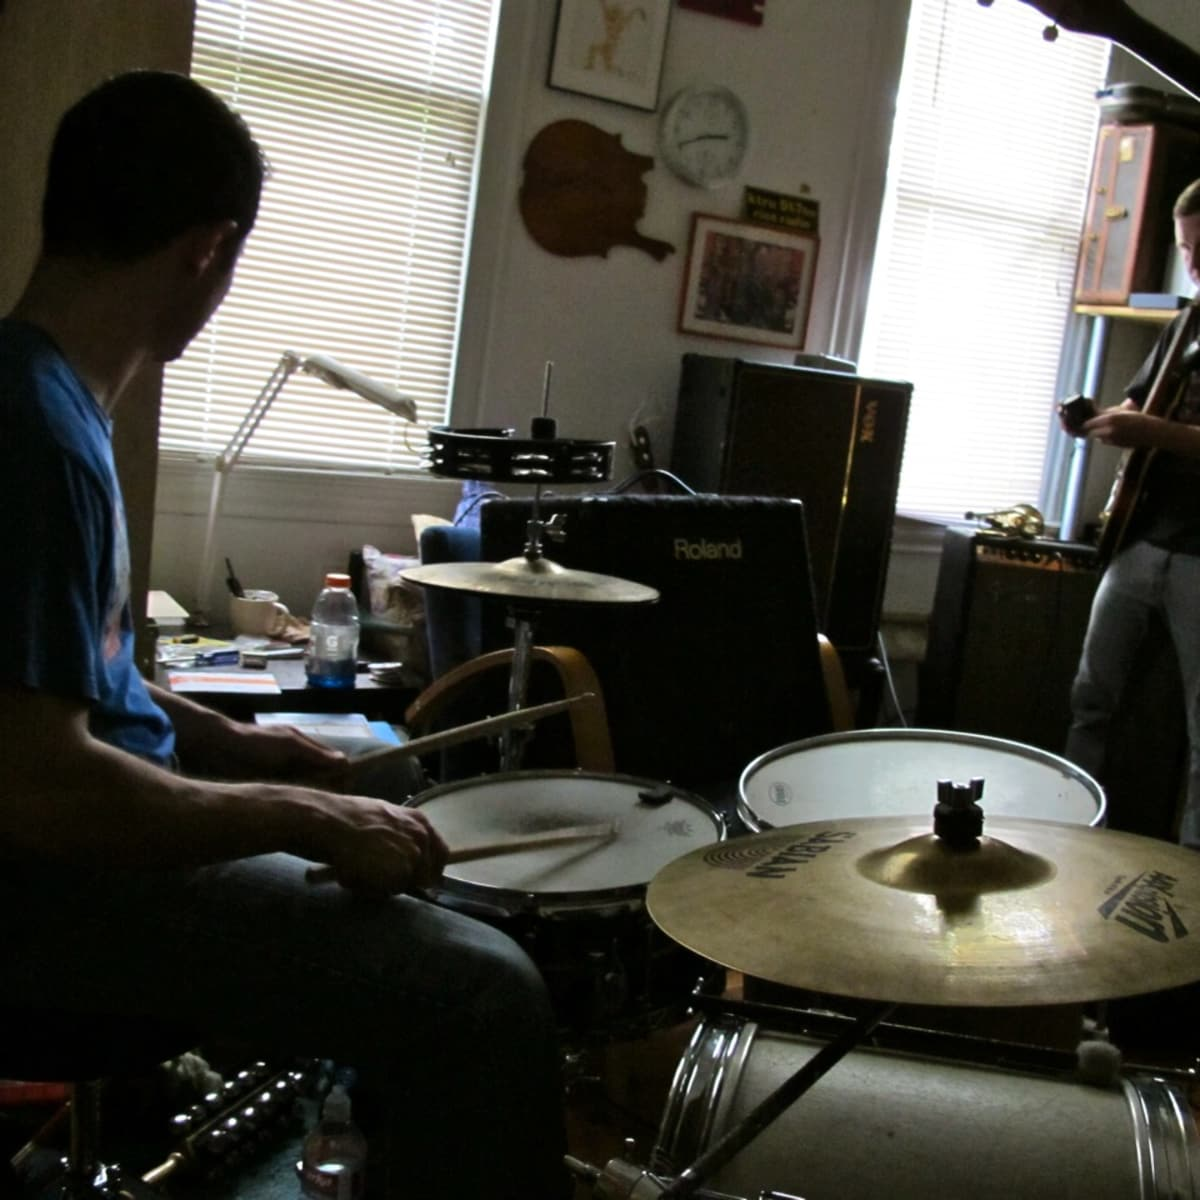 listenlisten in their din of dirges